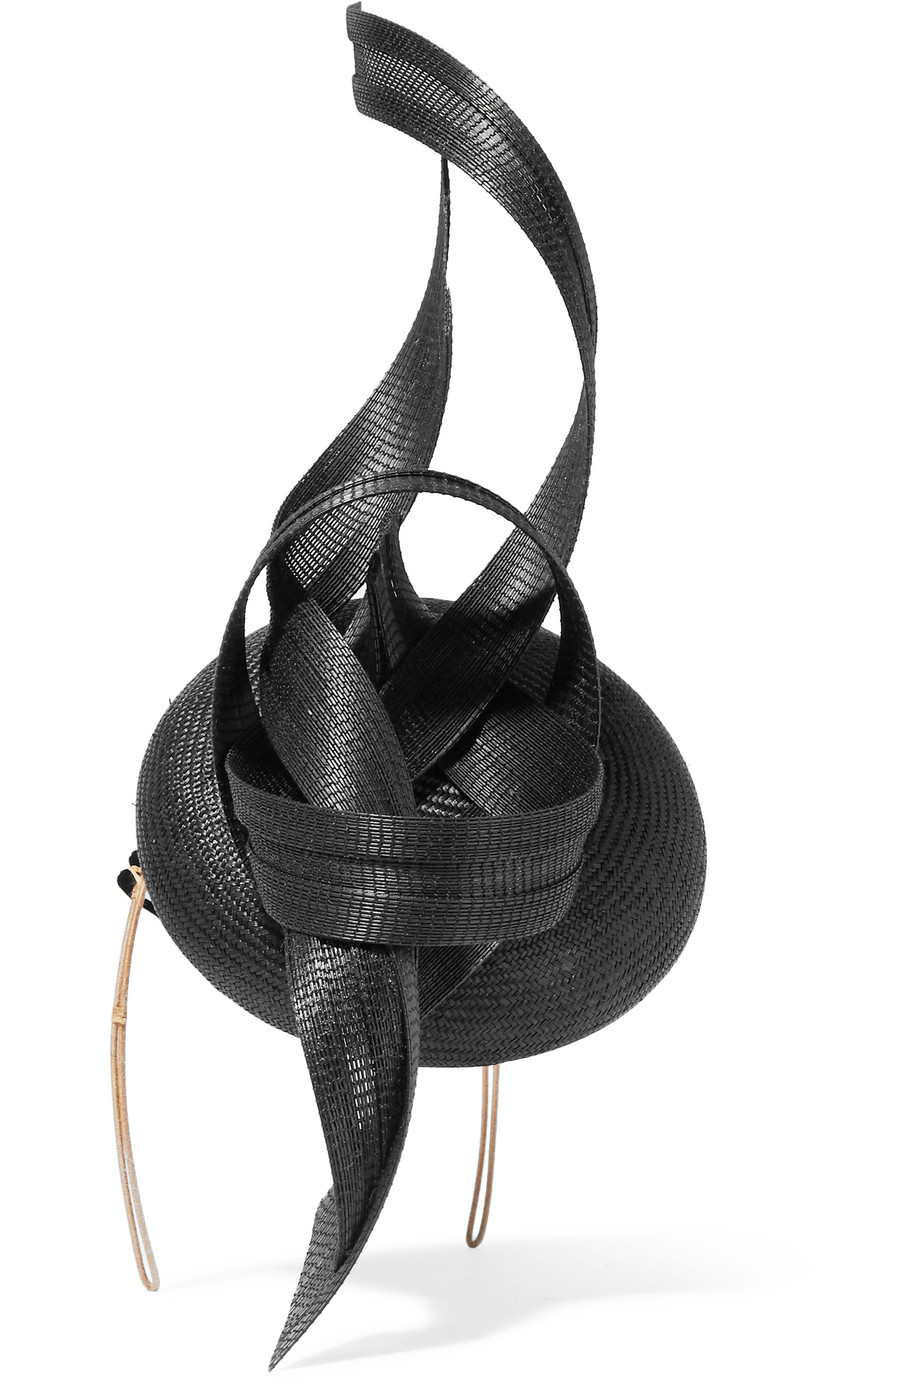 Philip Treacy Parasisal and Buntal Straw Headpiece, Black, Women's